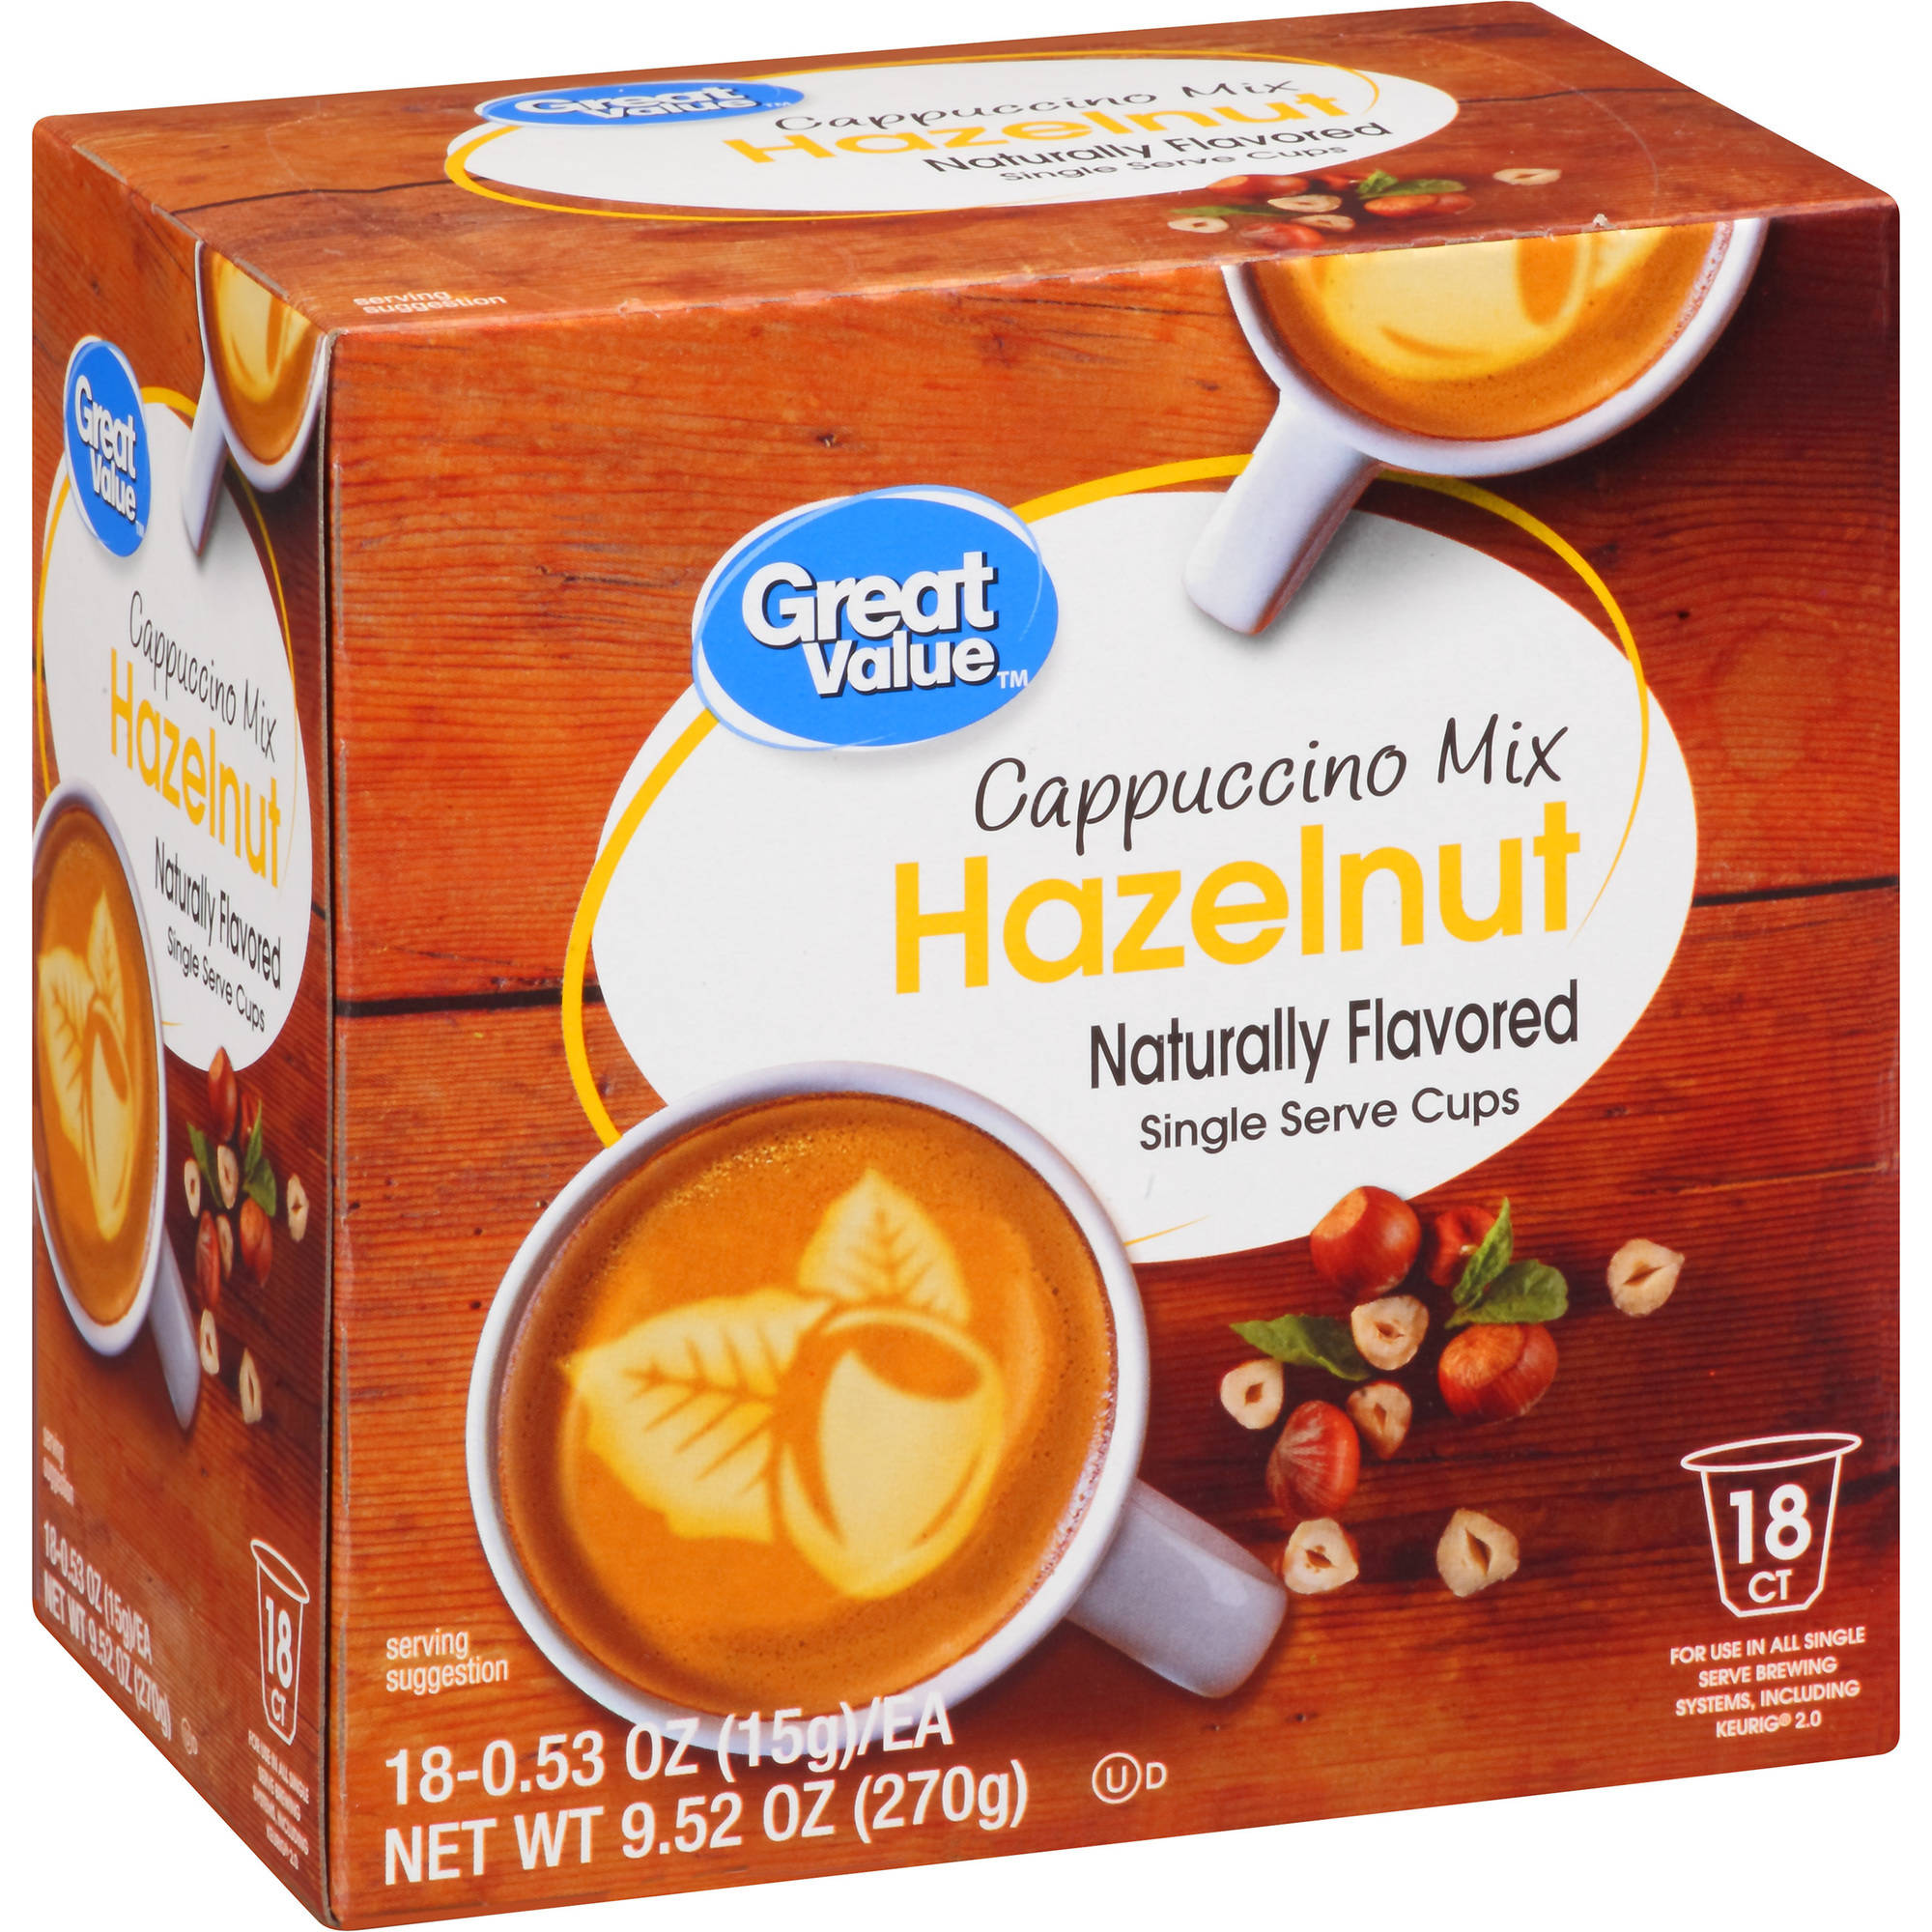 Great Value Hazelnut Cappuccino Mix Naturally Flavored